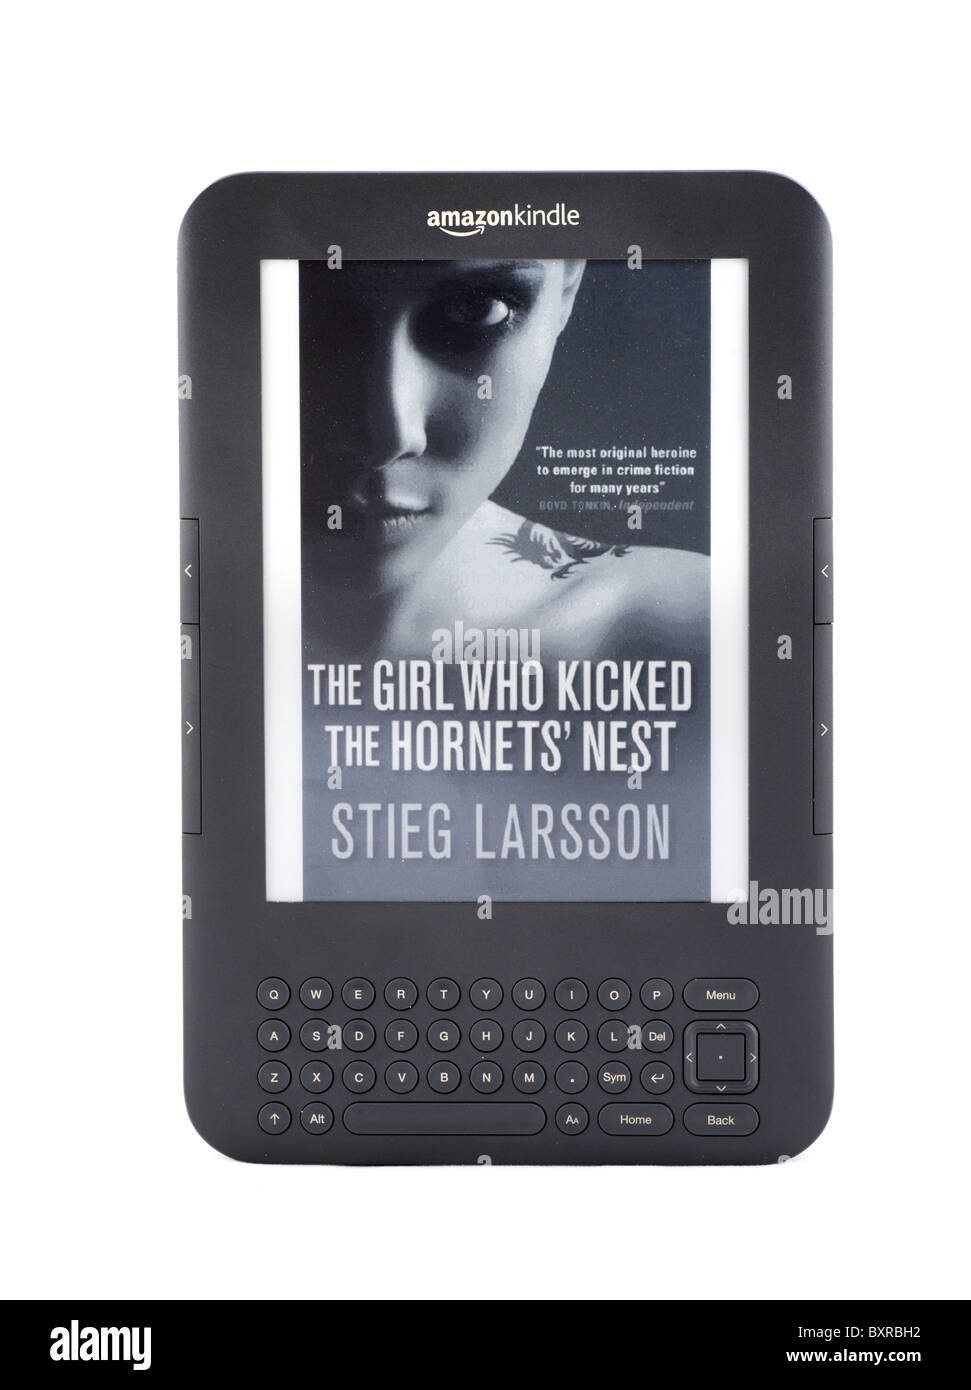 The 2010/11 Amazon Kindle ebook reader with a copy of one of Stieg Larsson's best selling Millennium trilogy, - Stock Image